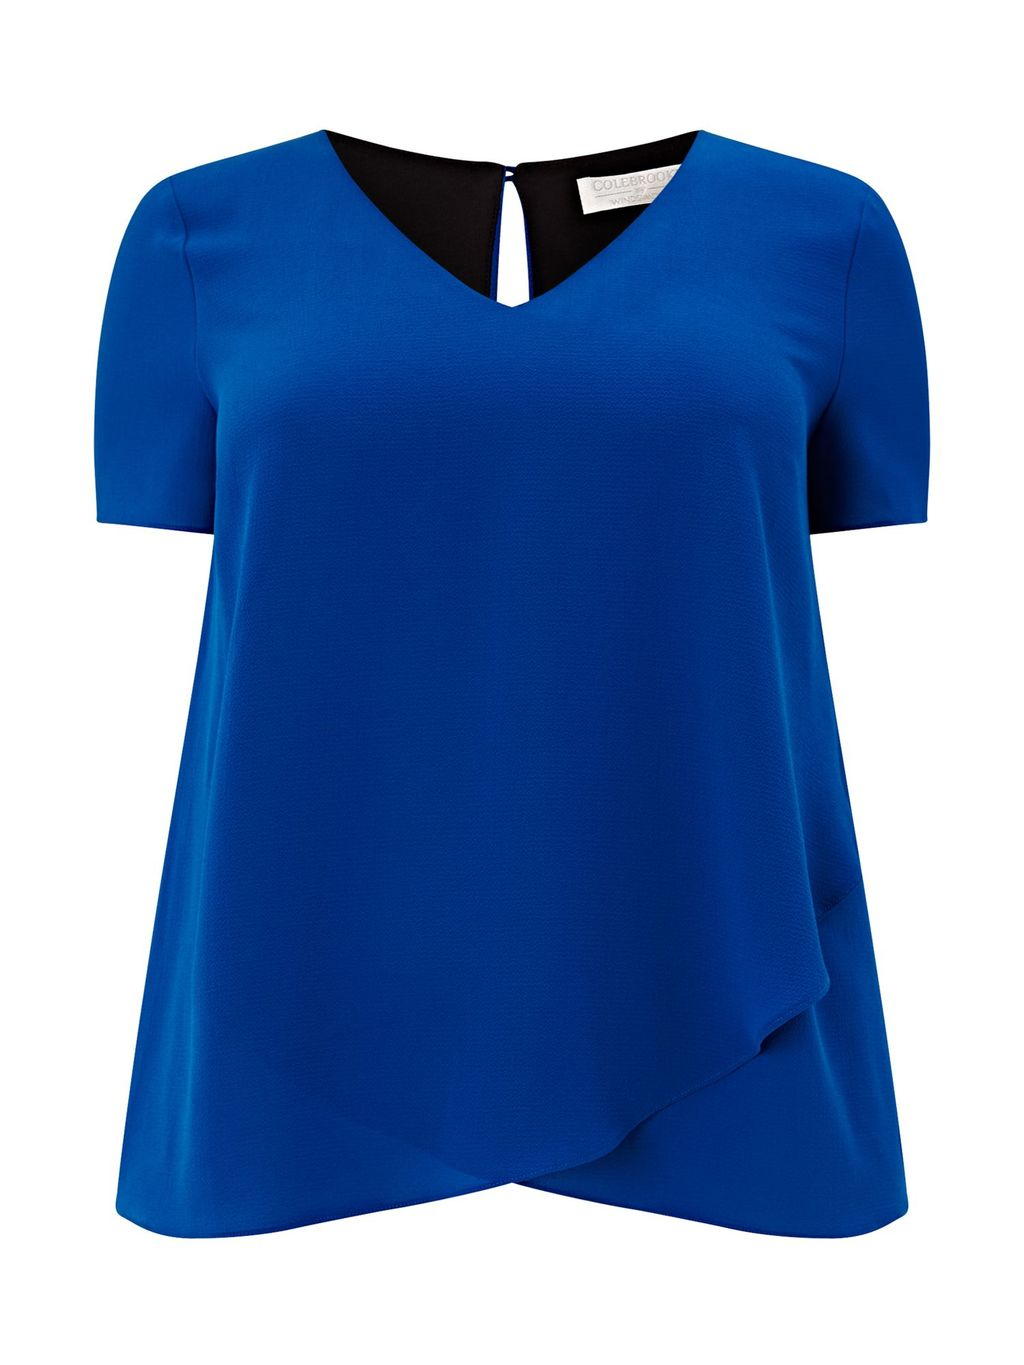 Jersey Woven Layered Top, Blue - neckline: v-neck; pattern: plain; predominant colour: royal blue; occasions: casual; length: standard; style: top; fibres: polyester/polyamide - 100%; fit: body skimming; sleeve length: short sleeve; sleeve style: standard; pattern type: fabric; texture group: jersey - stretchy/drapey; season: s/s 2016; wardrobe: highlight